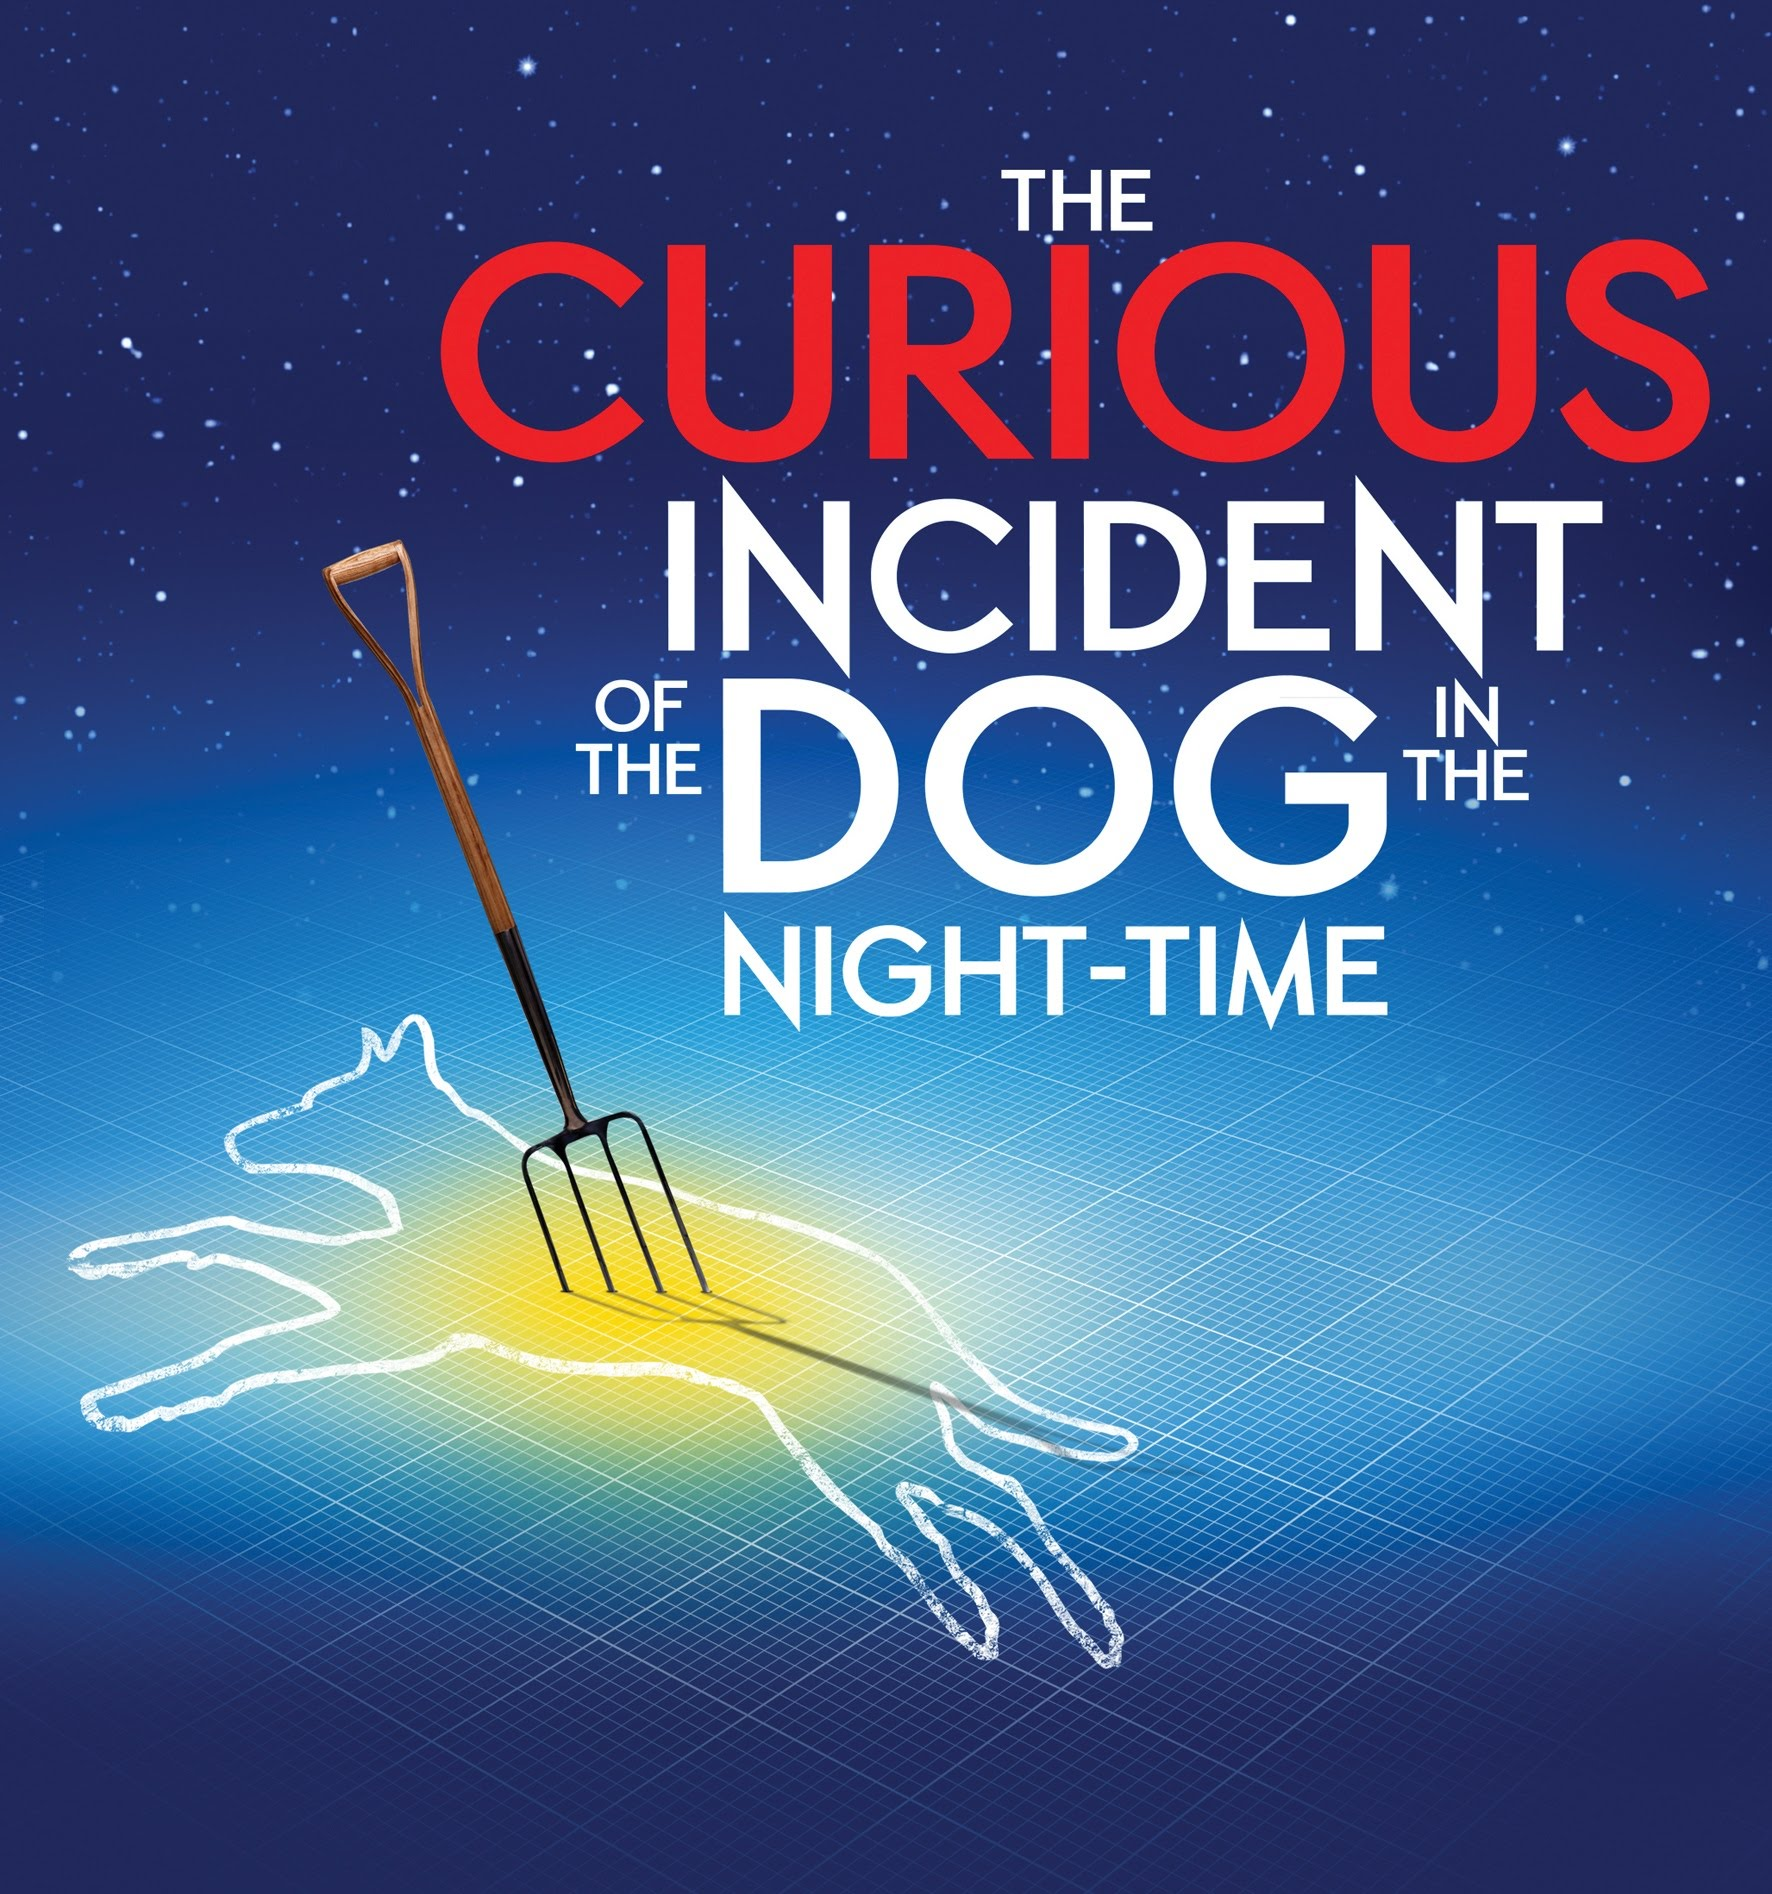 Spring Show May 18, 19 and 20 The Curious Incident of the Dog in the Night-Time